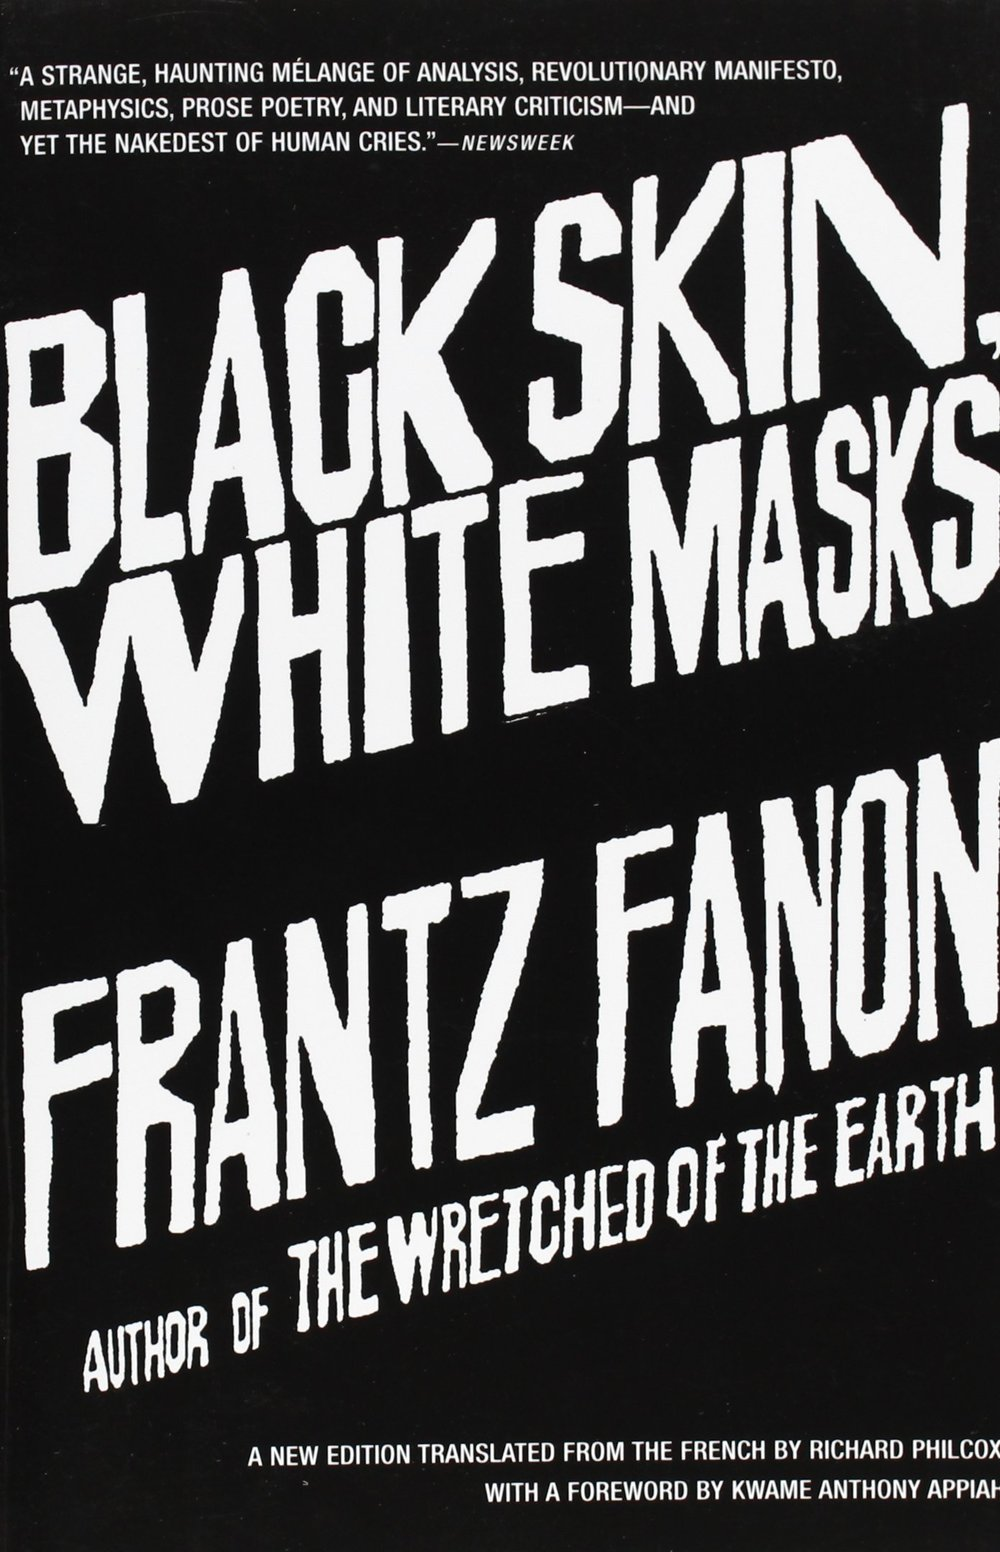 """""""Fanon is one of the most important anti-colonial theorist, breaking down all of the manifestations of colonialism from our psyches to our political systems. Living in societies still holding on to the vestiges of colonialism, this book is especially important to understand ourselves. This is one of the best tools to understand blackness as an independent identity, not antithetical to whiteness but grounded in an indigenous African cultural tradition."""""""